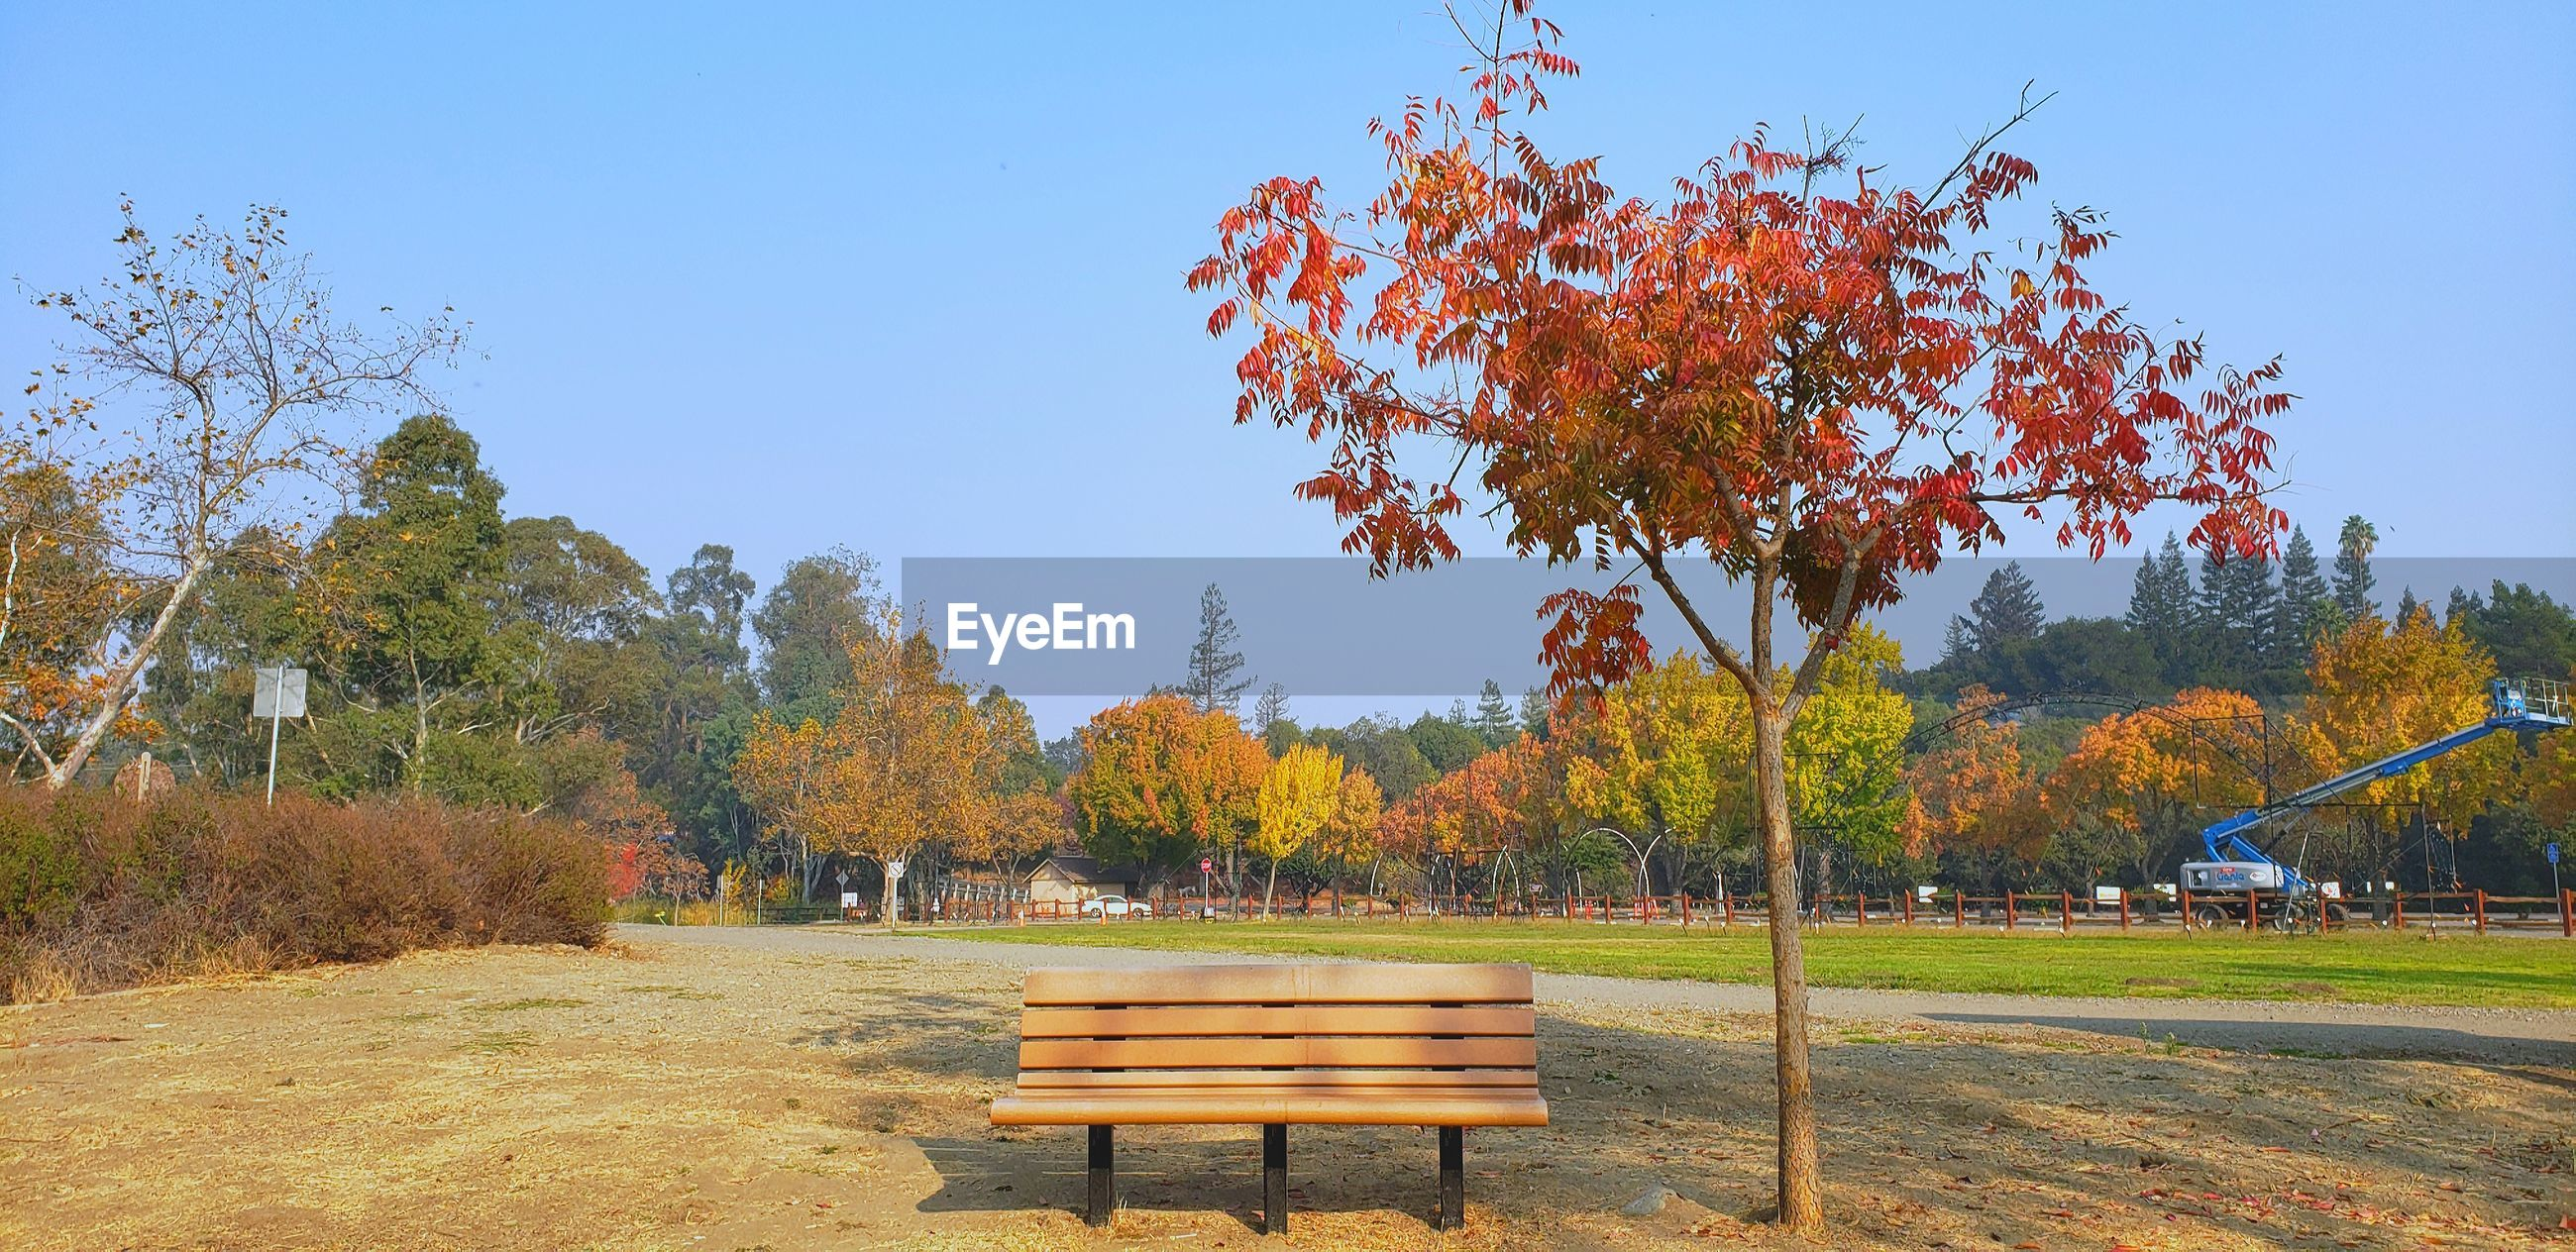 PARK BENCH BY TREES ON FIELD AGAINST CLEAR SKY